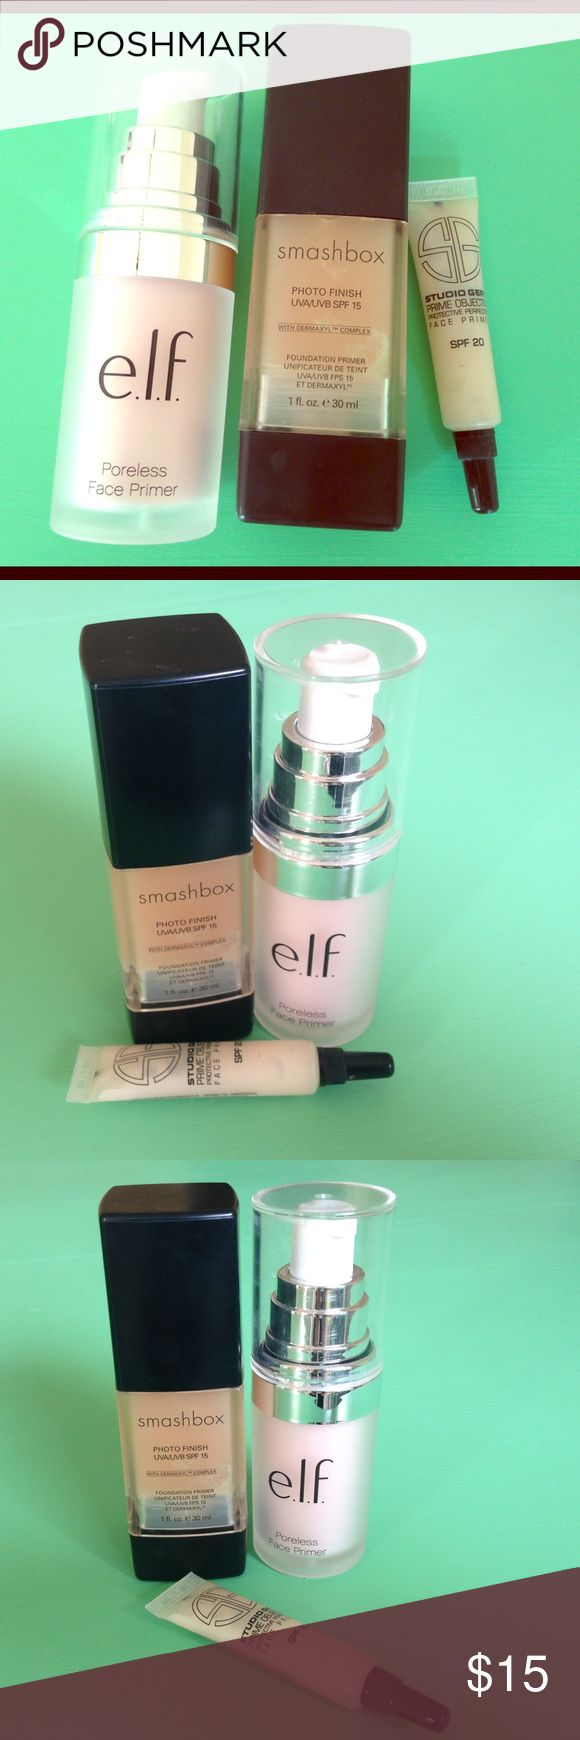 Smashbox photo finish foundation primer elf primer I'm selling this 3 piece cosmetic face primer lot. The elf primer is the studio line pore less face primer used once.      The smashbox photo finish sod 15 foundation primer is 3/4 full as seen in photo...             You will also receive a sample size studio gear prime objective face primer, tried once.  I will be adding tons more makeup, I have a dresser full of everything! Smashbox Makeup Face Primer